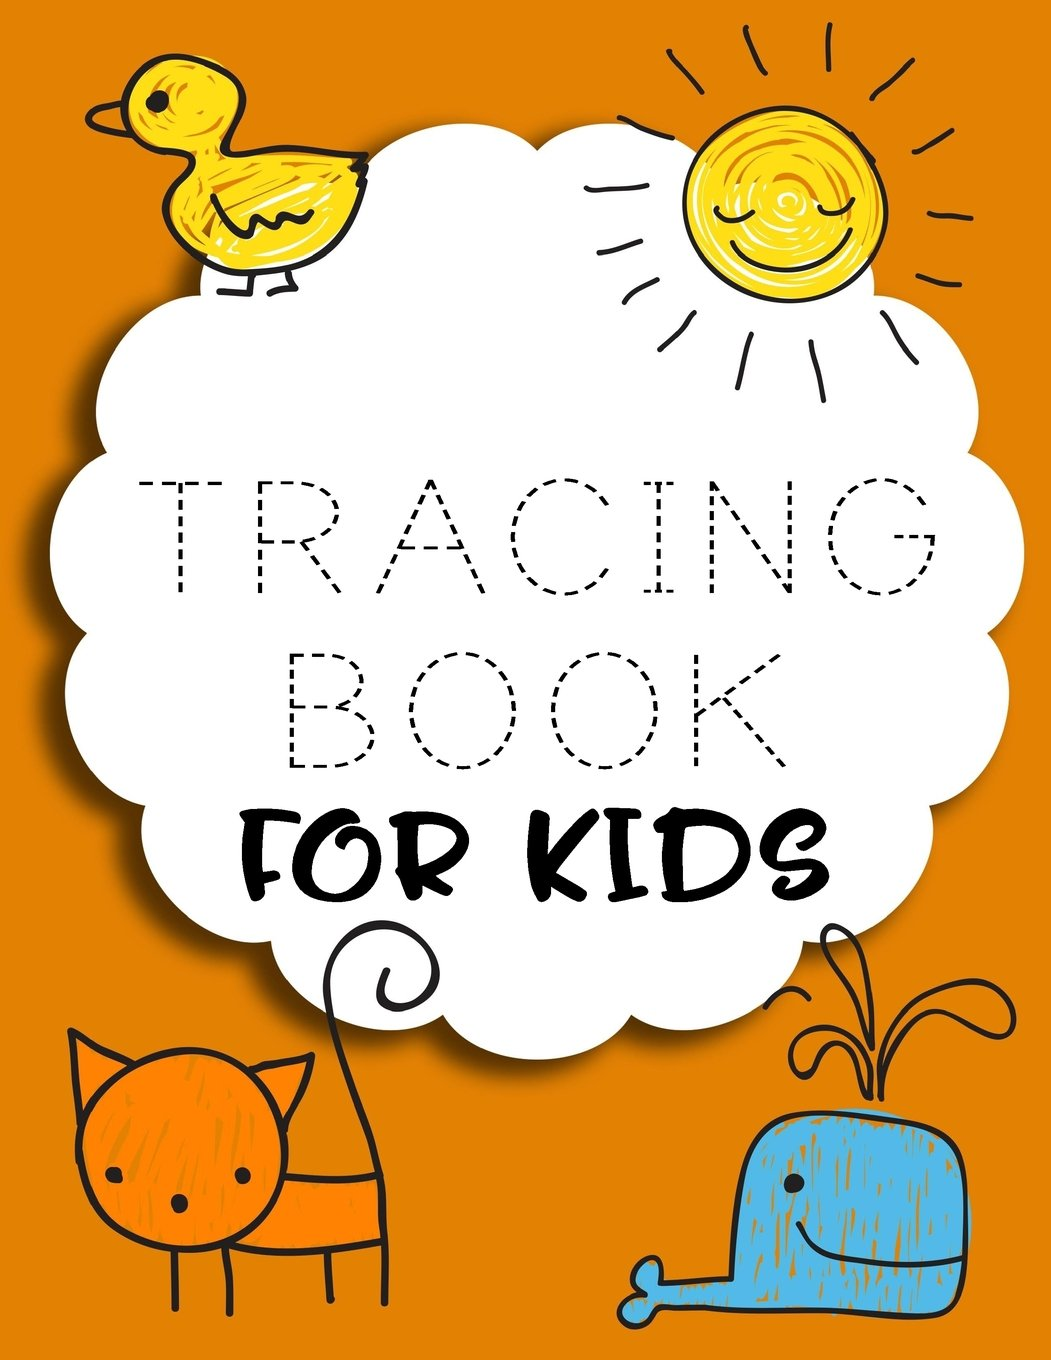 Tracing Book For Kids: Letter Tracing Practice Book For Preschoolers, Kindergarten (Printing For Kids Ages 3-5)(5/8? Lines, Dashed) pdf epub